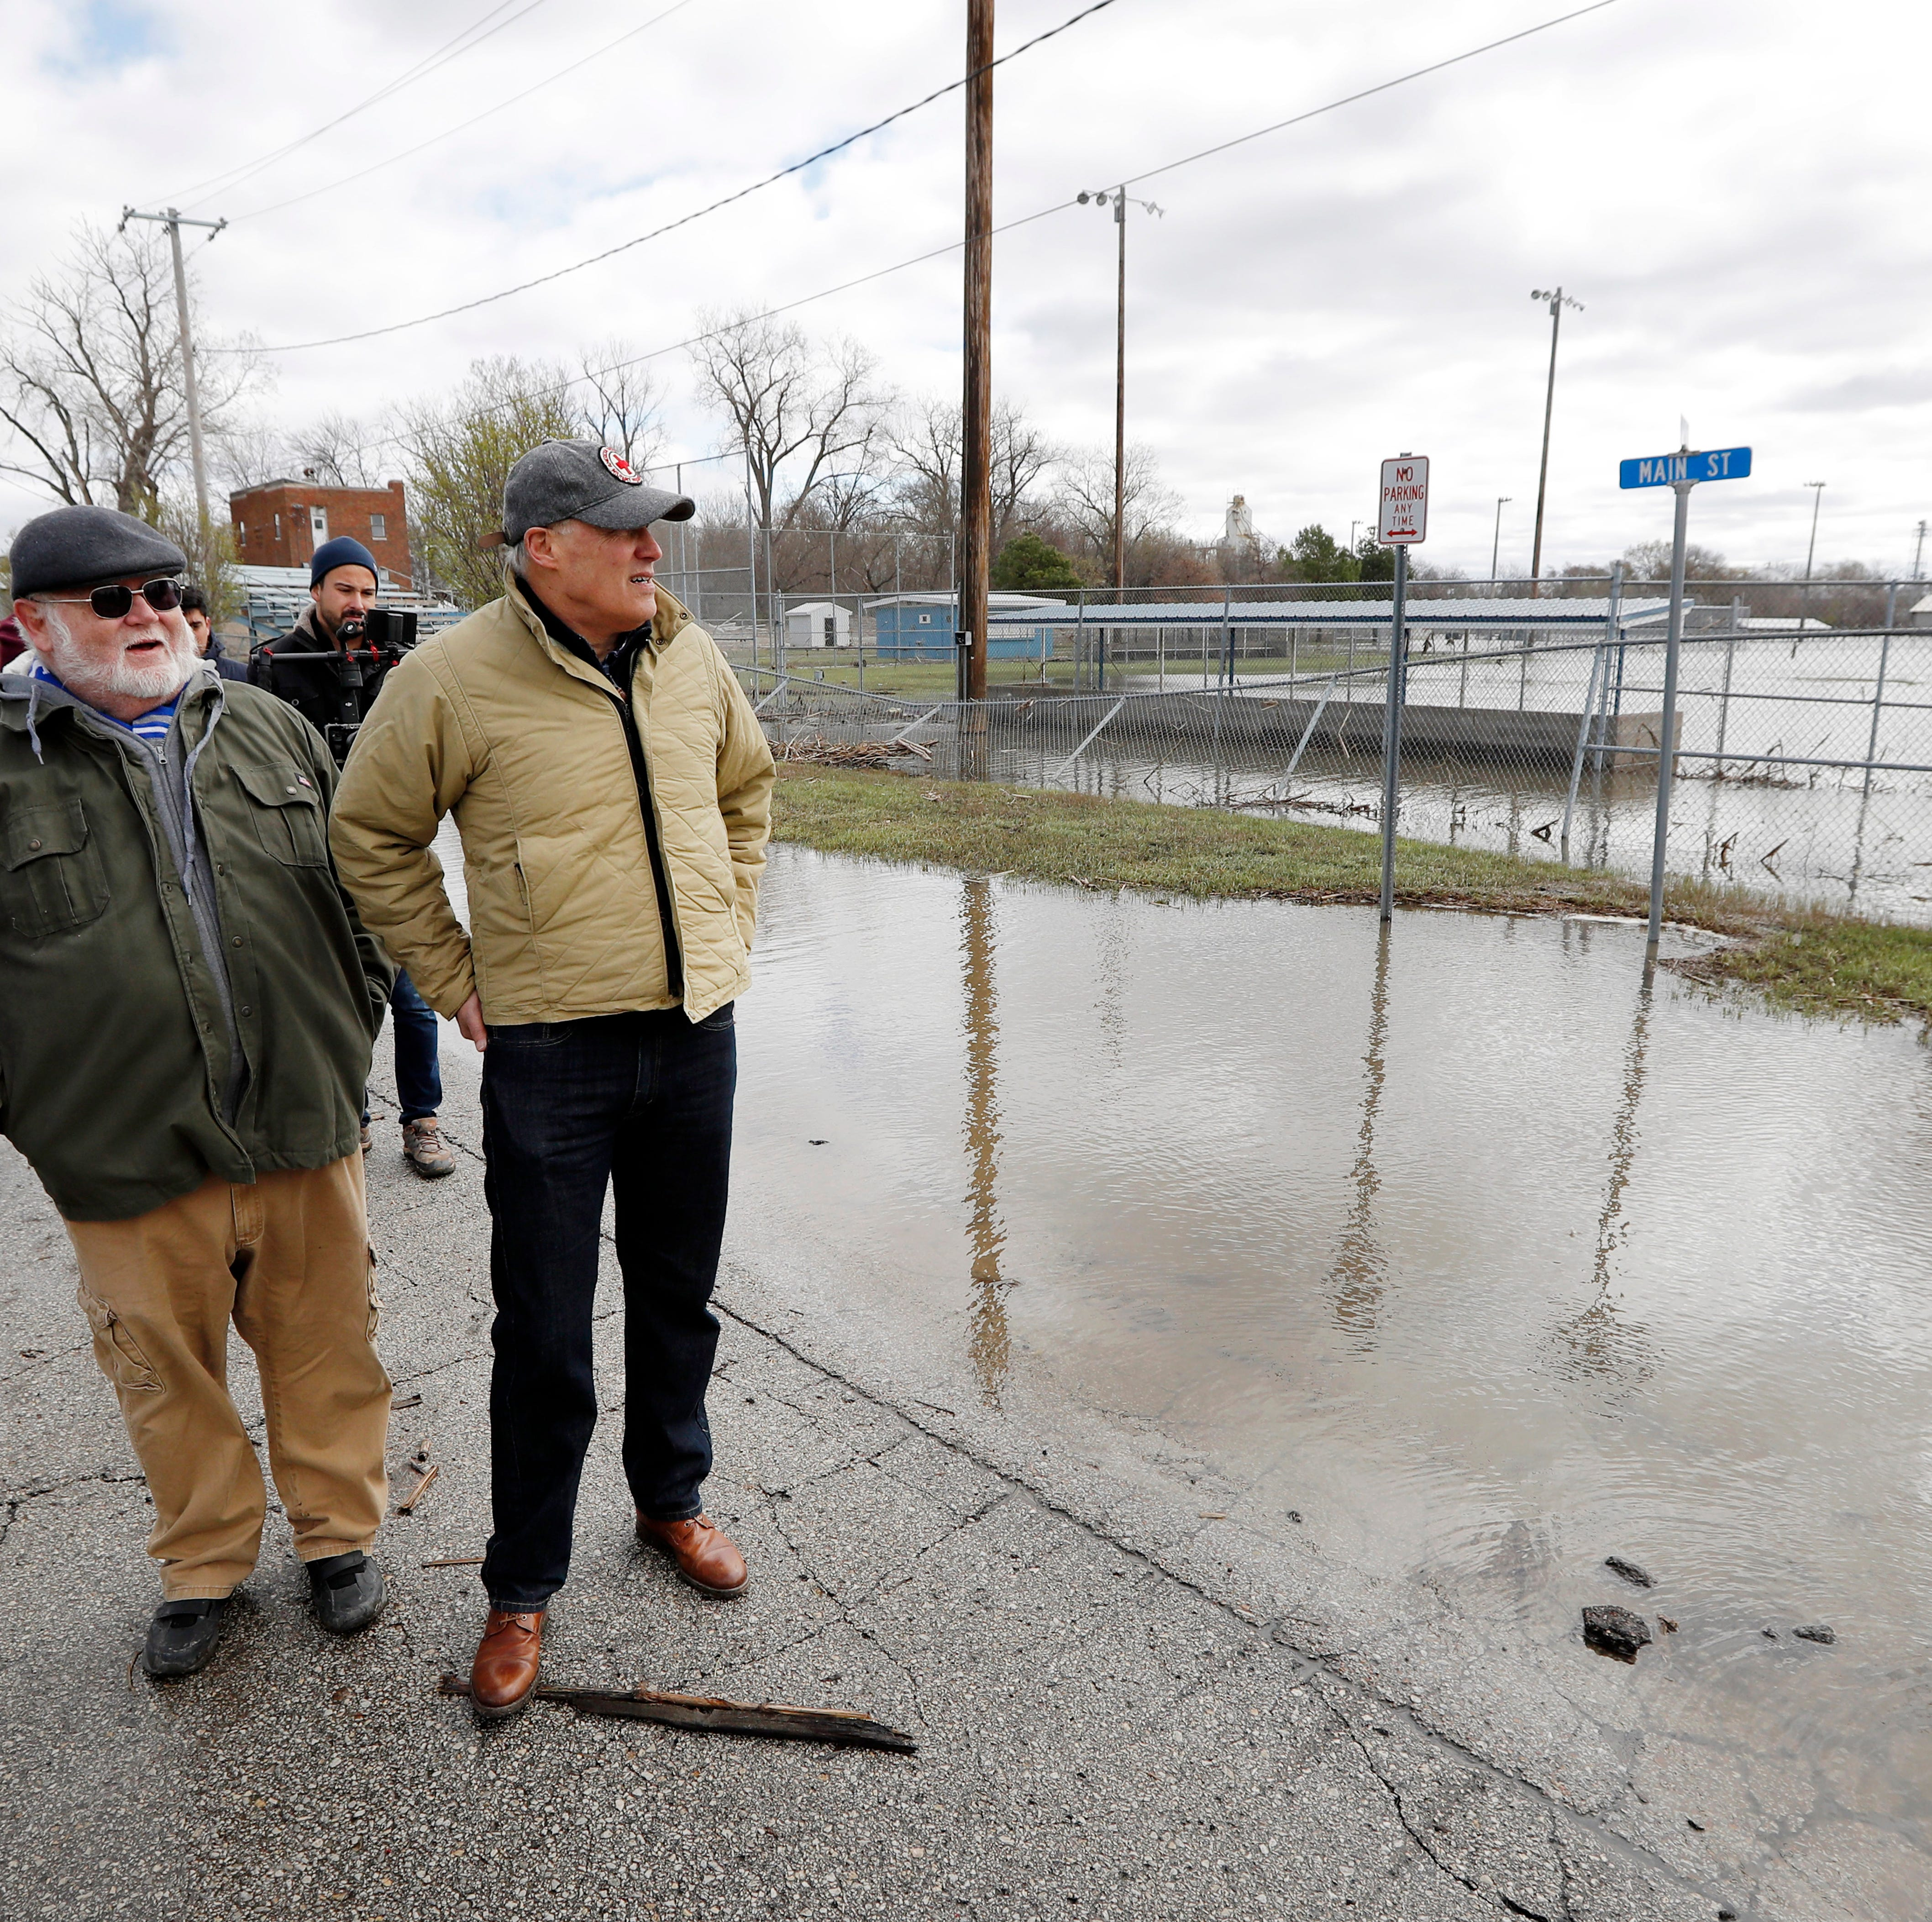 Jay Inslee believes climate change intensified flooding in Hamburg. Some residents say no.